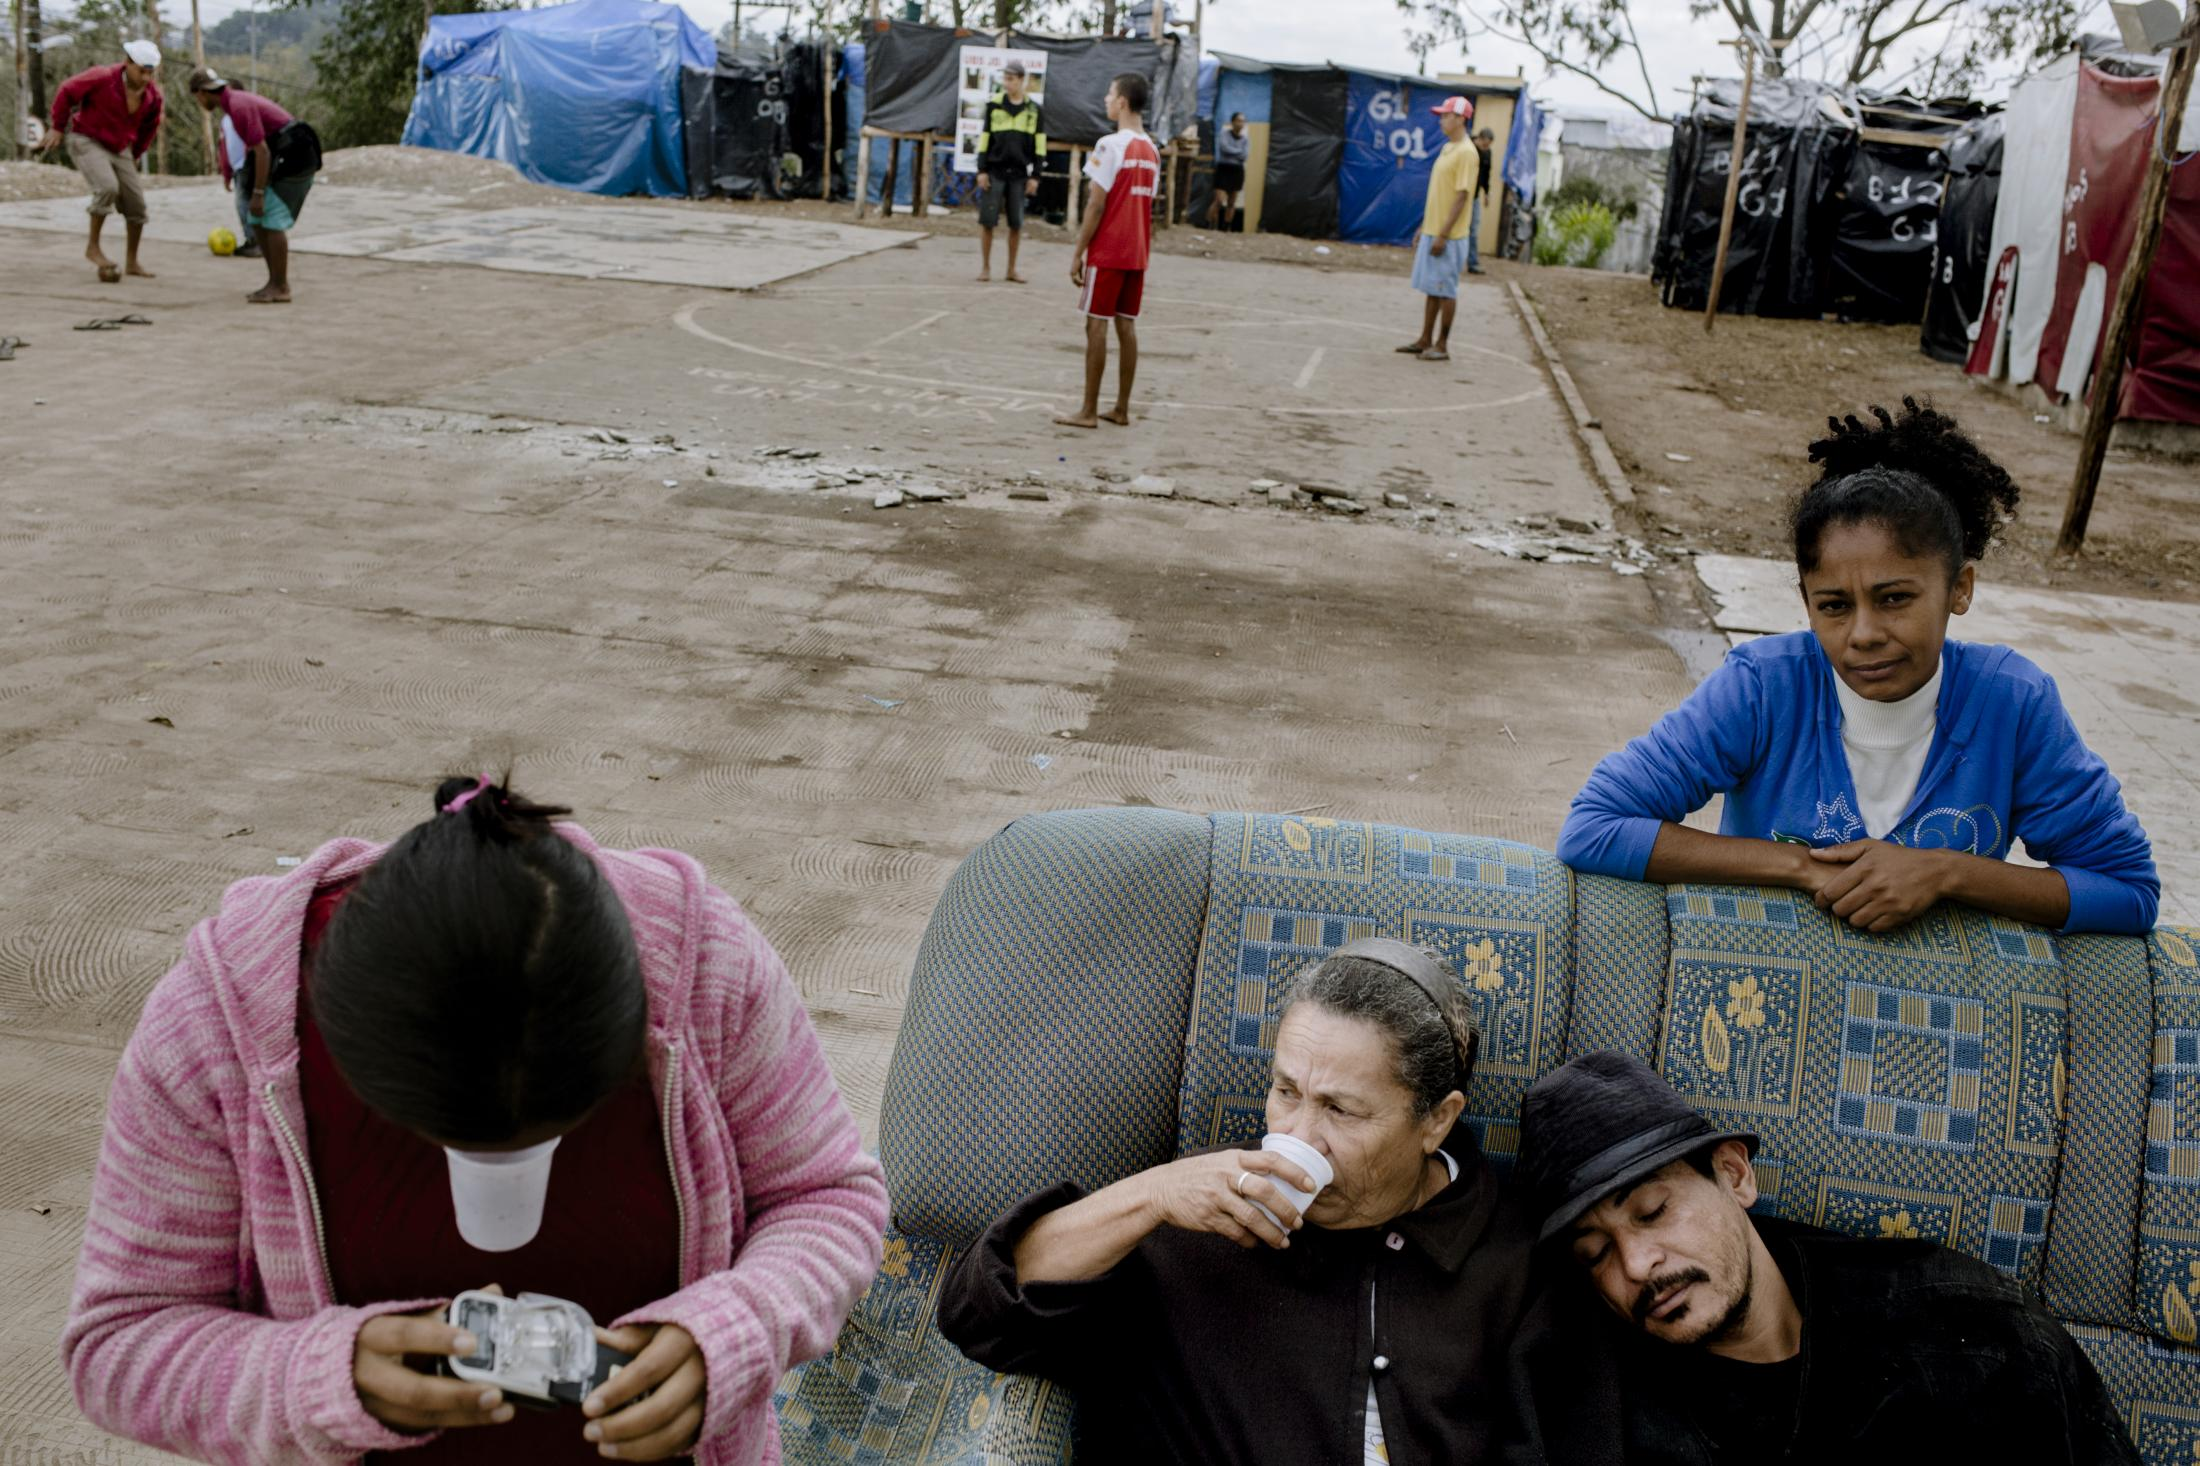 A group of neighbors relaxing after a day of labor at the MTST camp. About 5000 people settled here demanding housing rights solutions, while the country spent $3.6 billion on construction, logistics, and marketing, using public funds. Itaquera, São Paulo / Brazil. 2014.